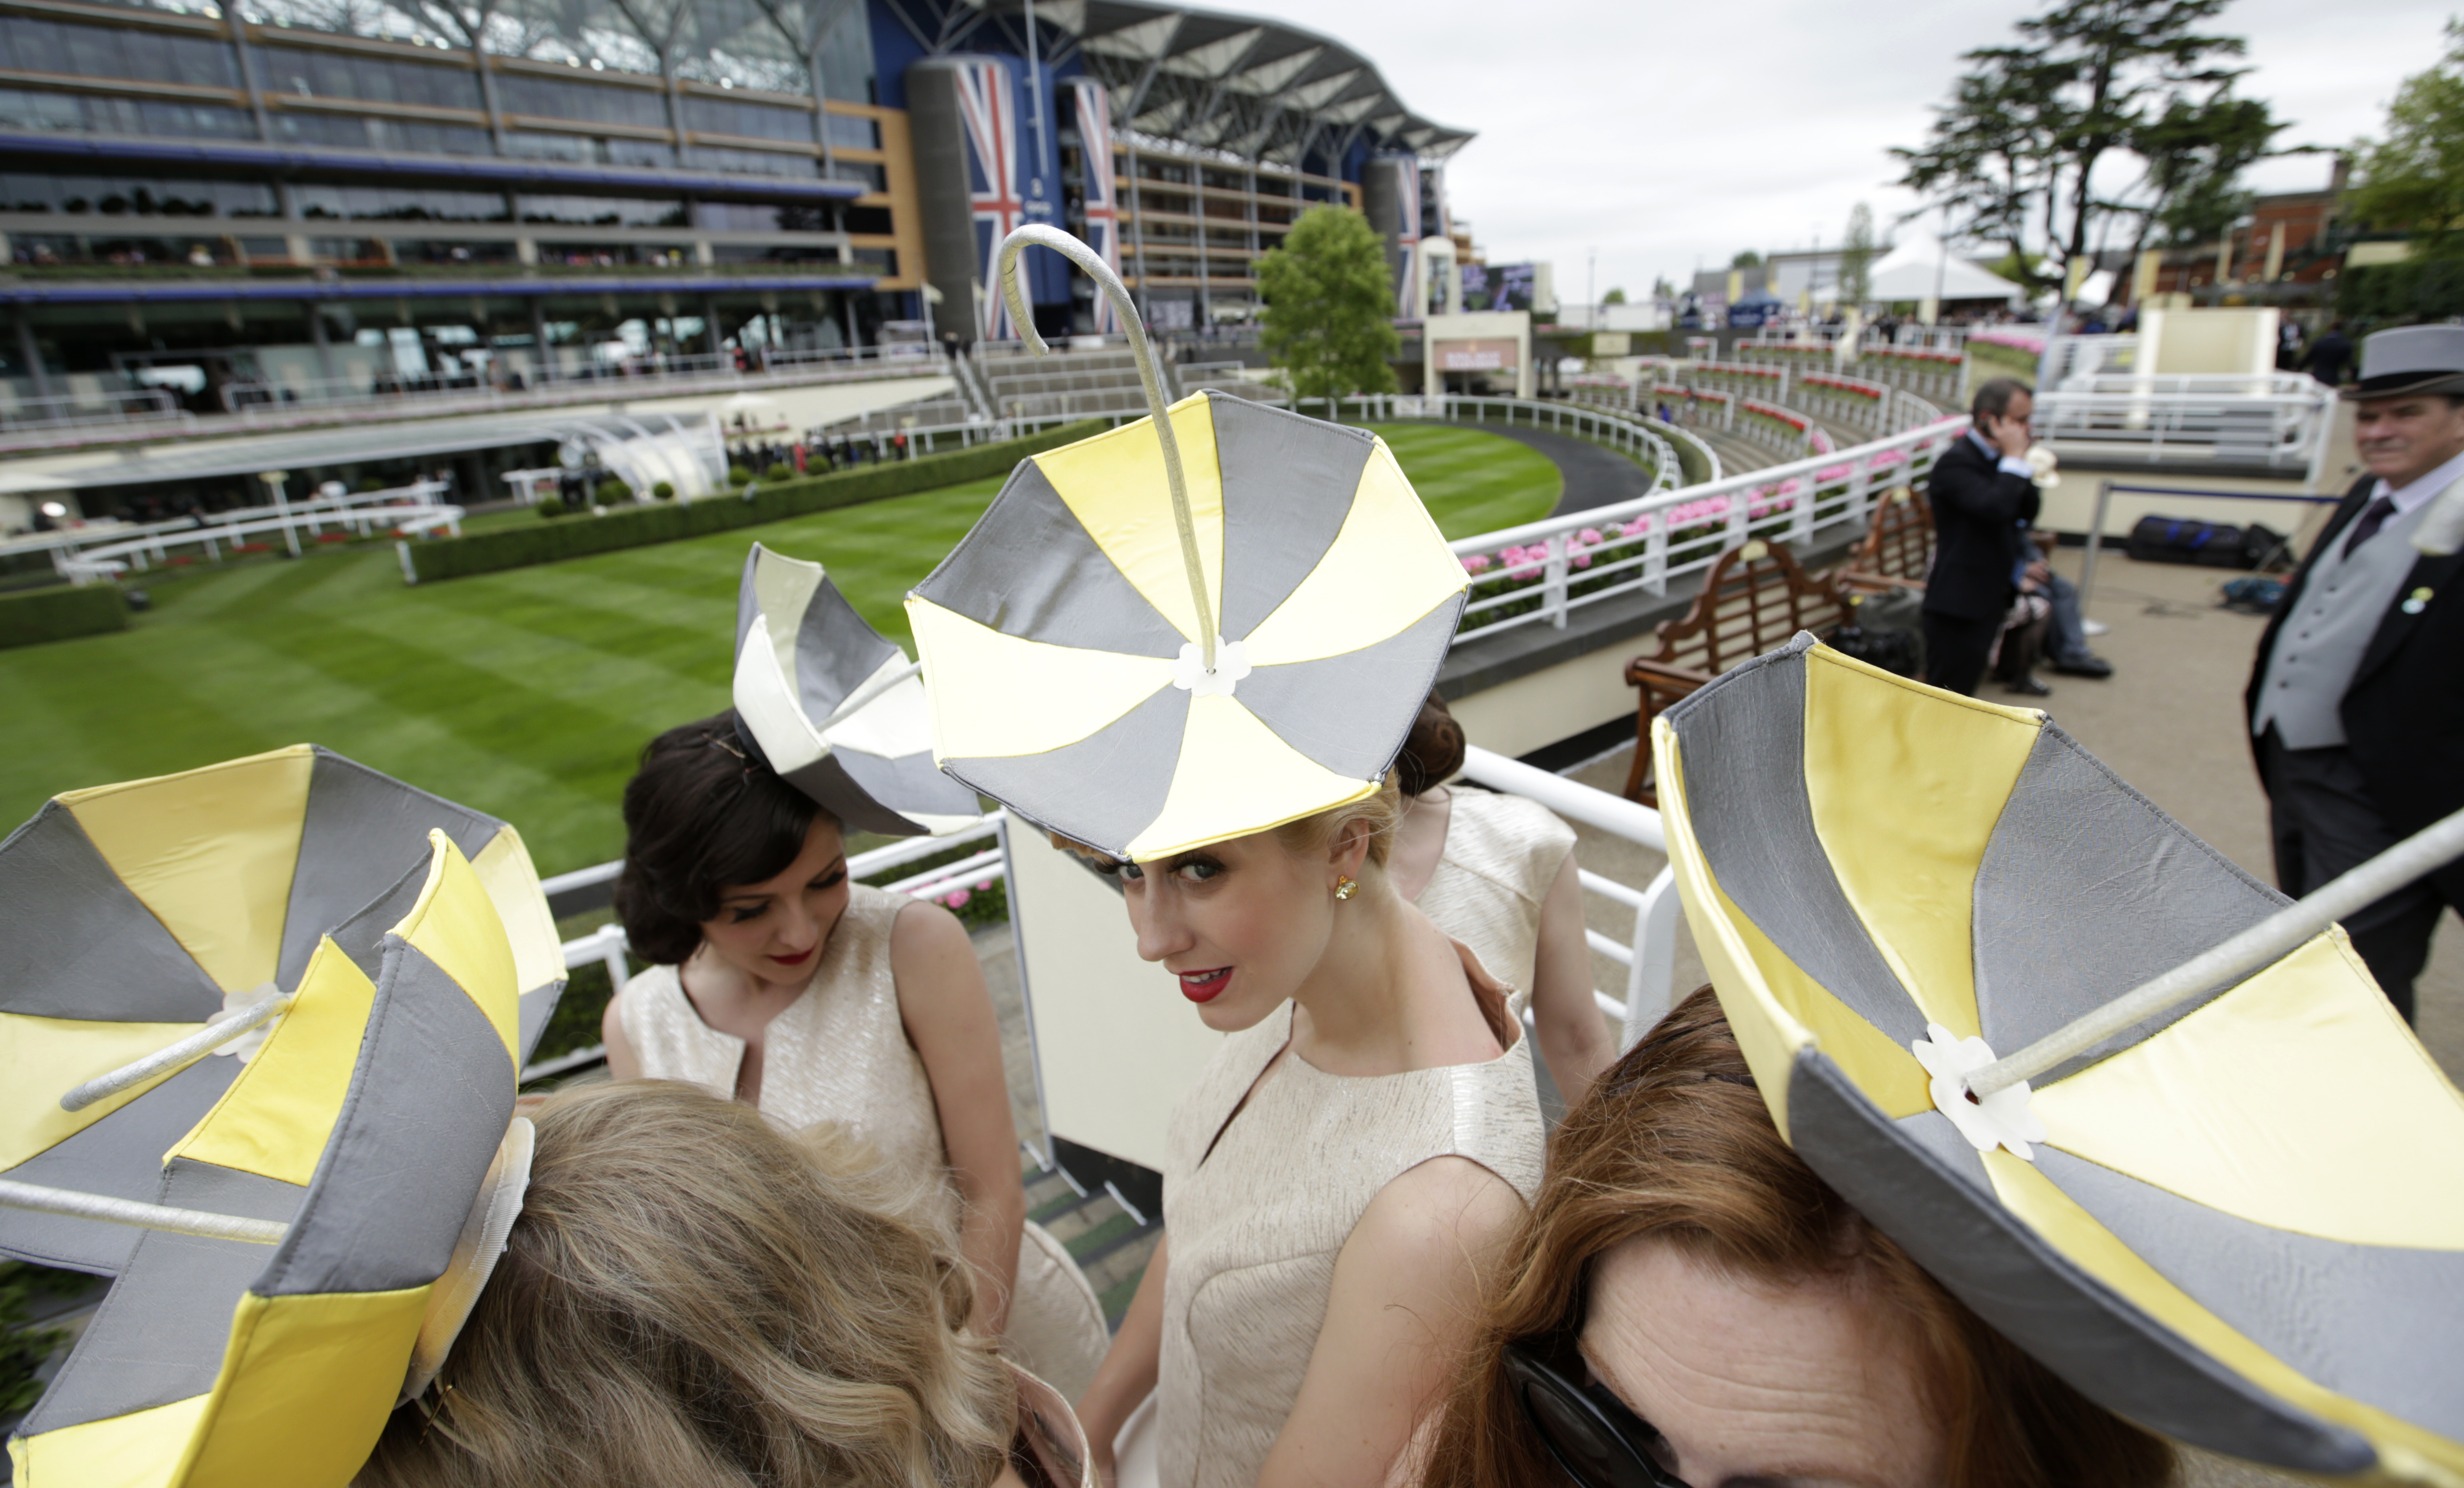 Umbrella hats worn by a singing group as they pose next to the parade ring on the second day of  Royal Ascot horse racing meet at Ascot, England, Wednesday, June 17, 2015. Royal Ascot is the annual five day horse race meeting that Britain's Queen Elizabet